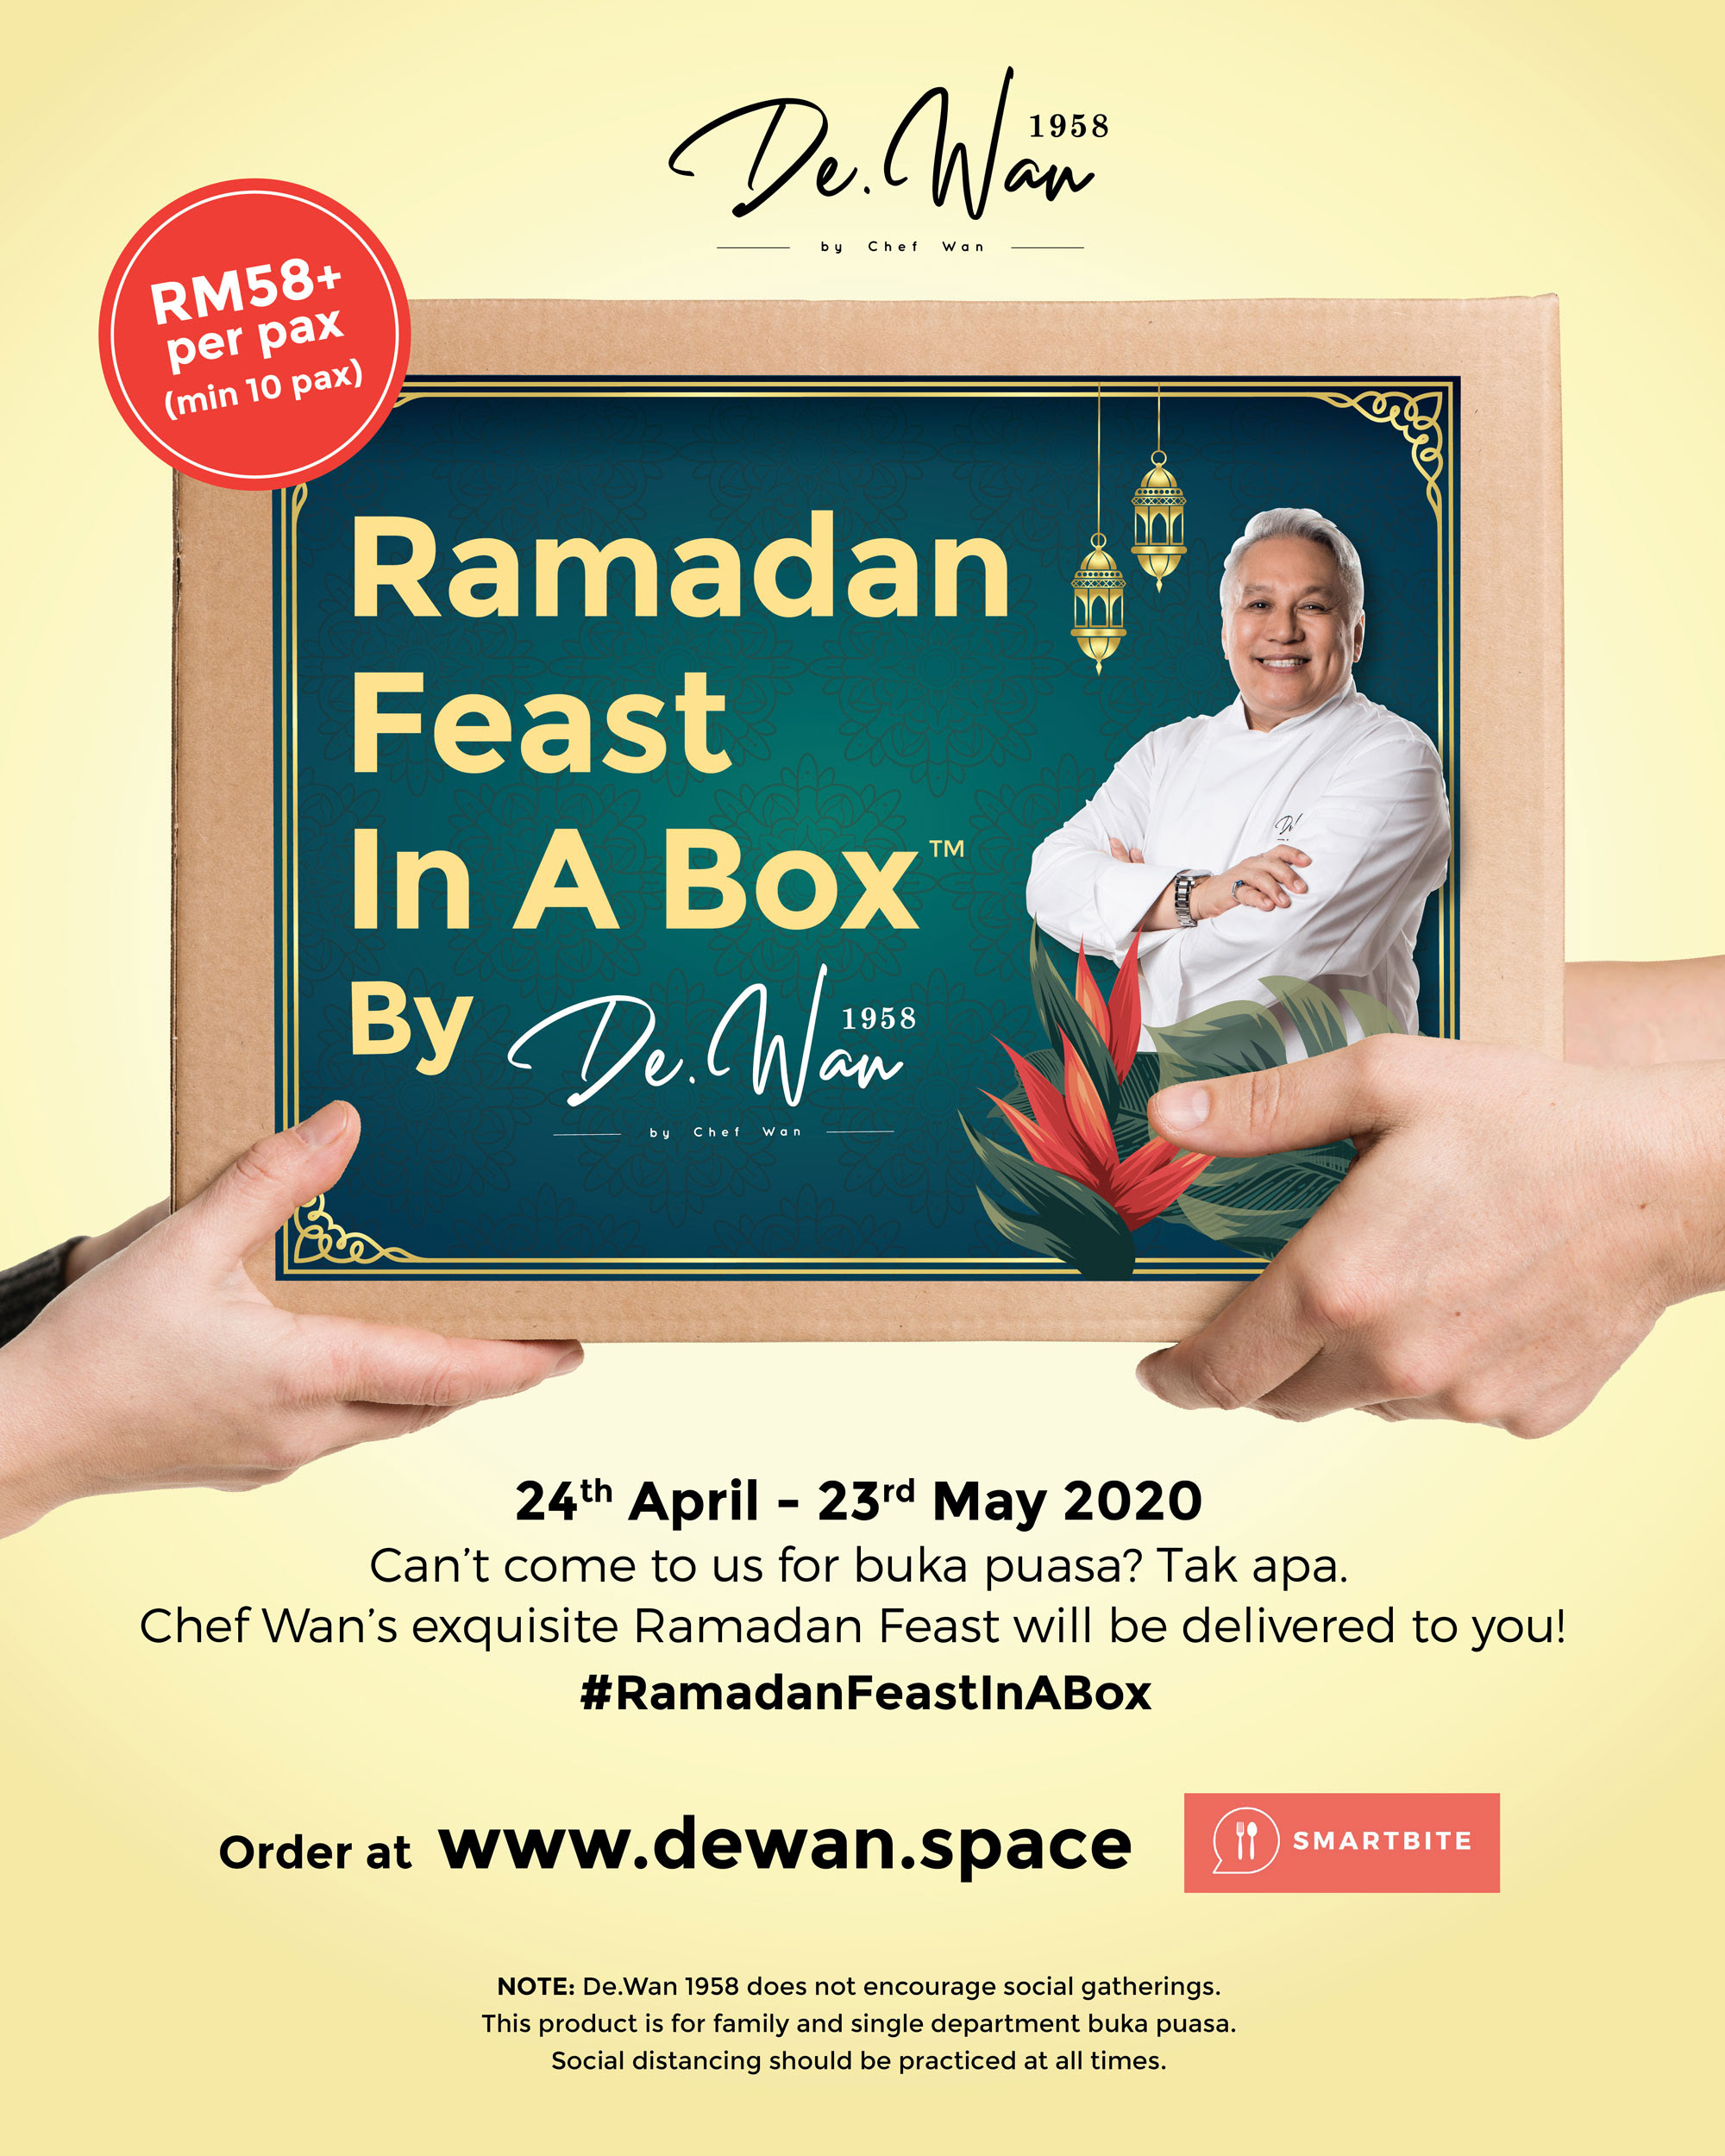 Ramadan Feast In A Box by De.Wan 1958